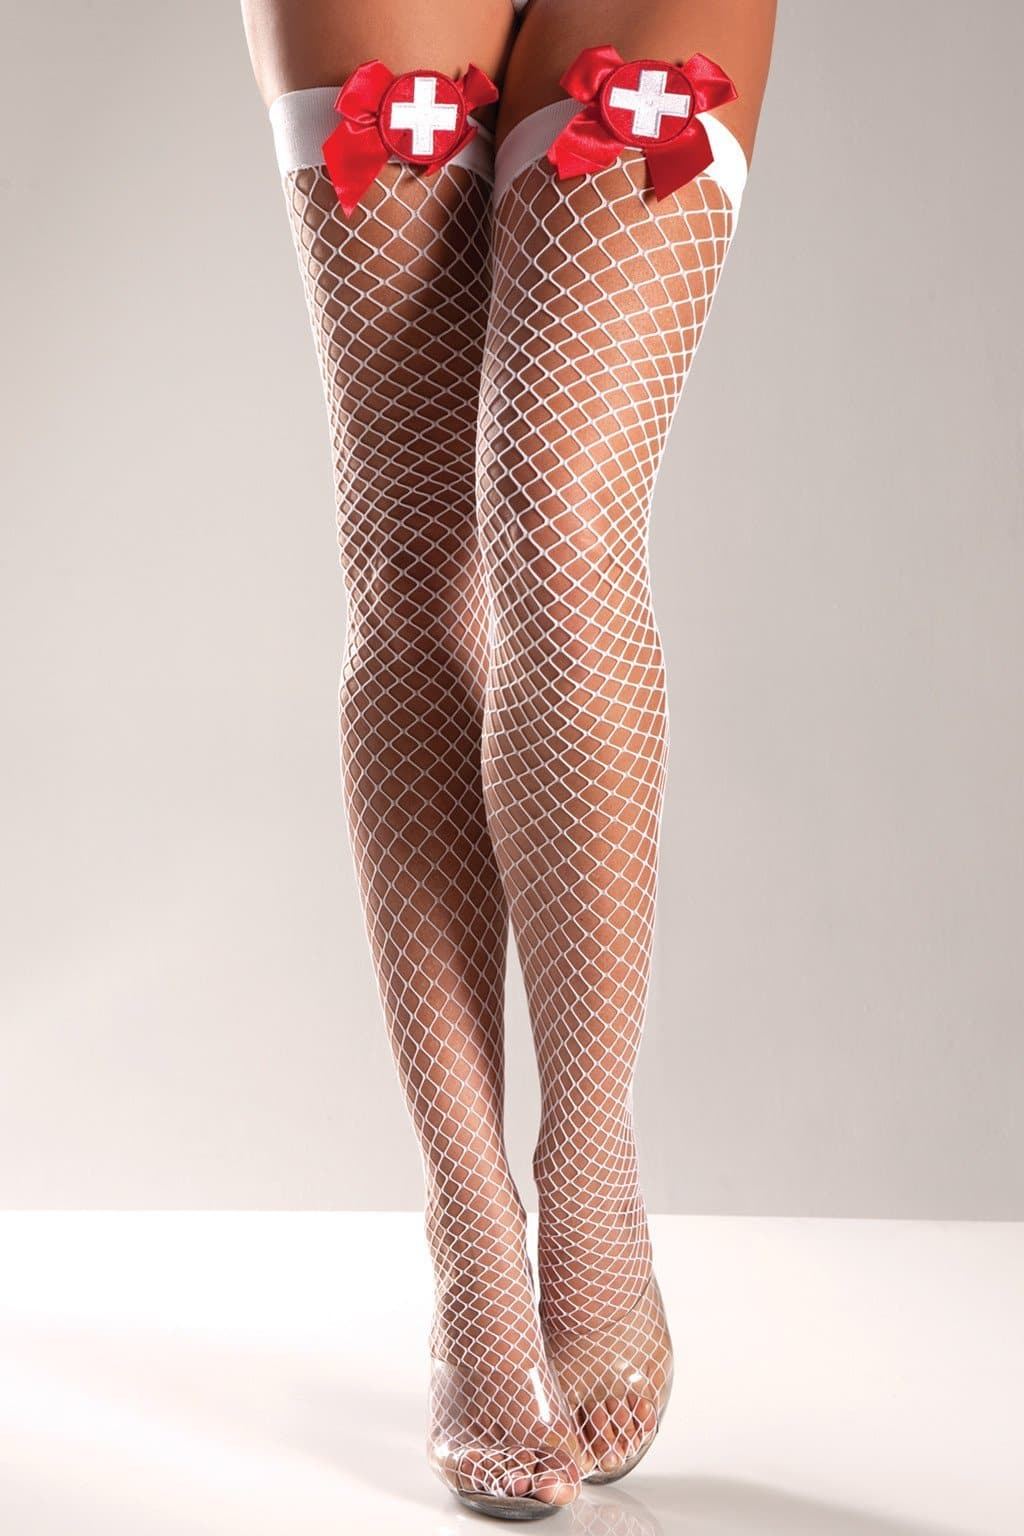 Be Wicked BW578 Wide Net Thigh High With Cross on Bow